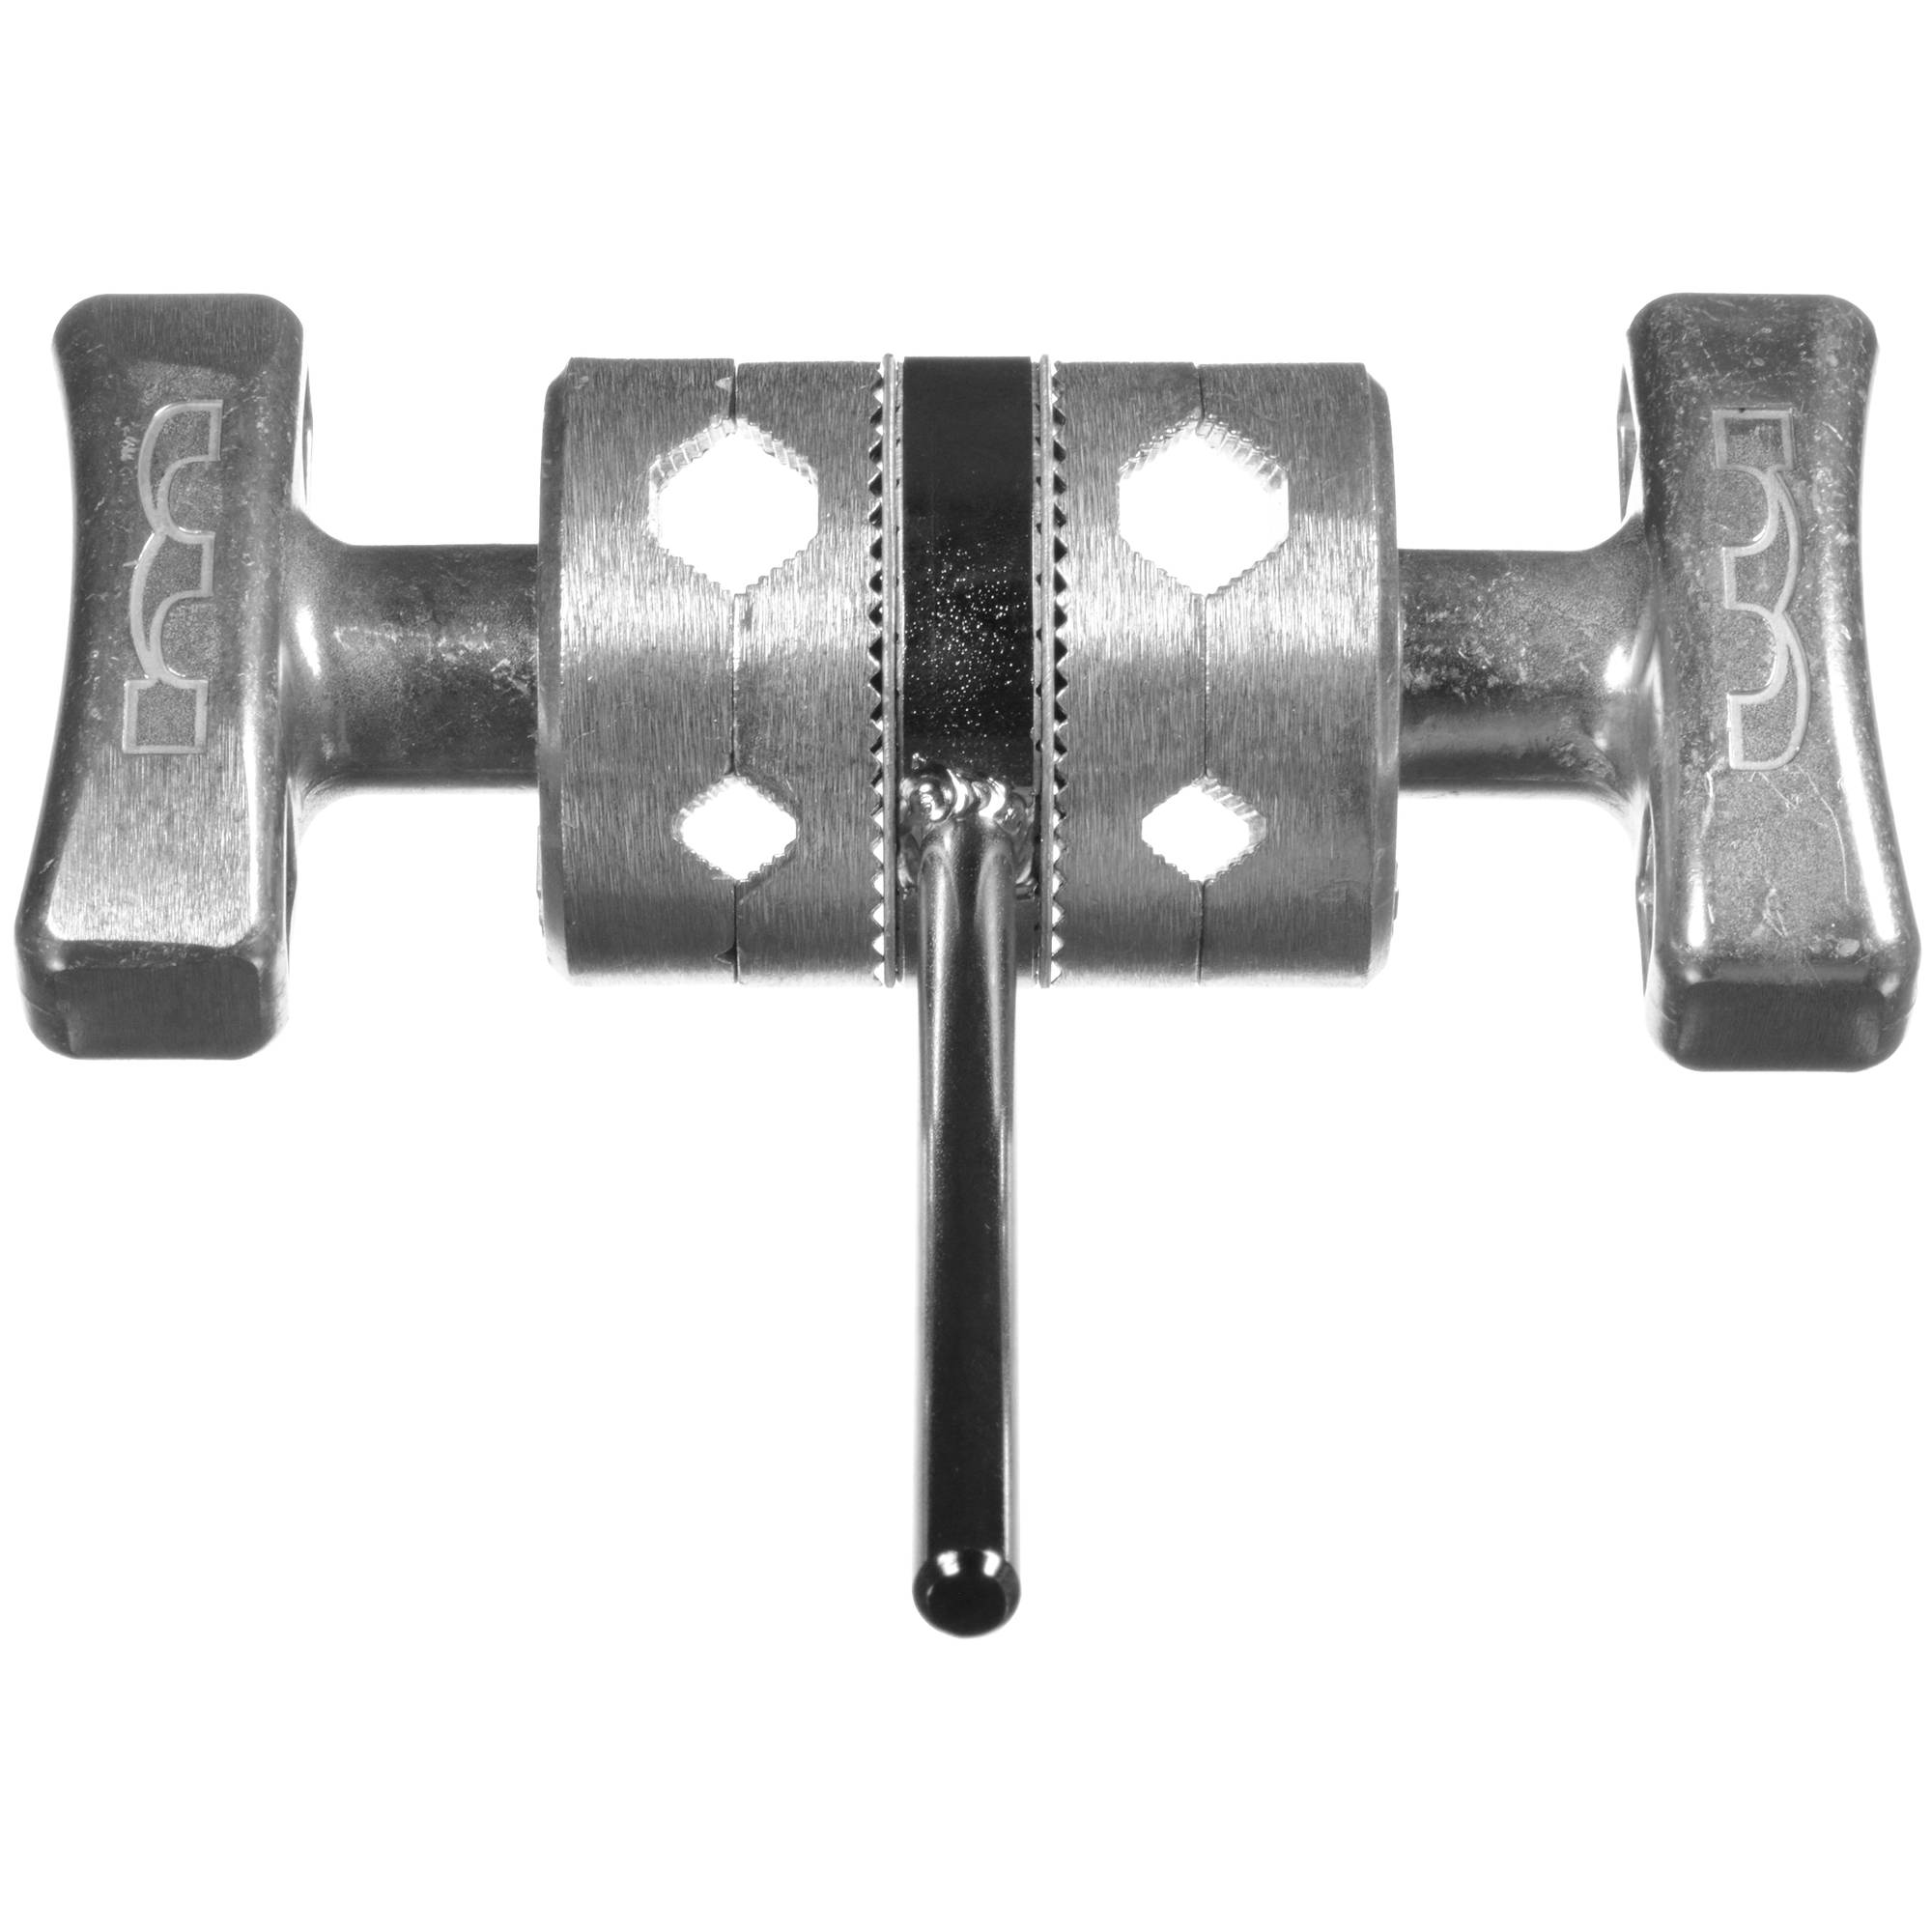 Two Sets of Grip Head Plates on One Shaft Matthews Gag